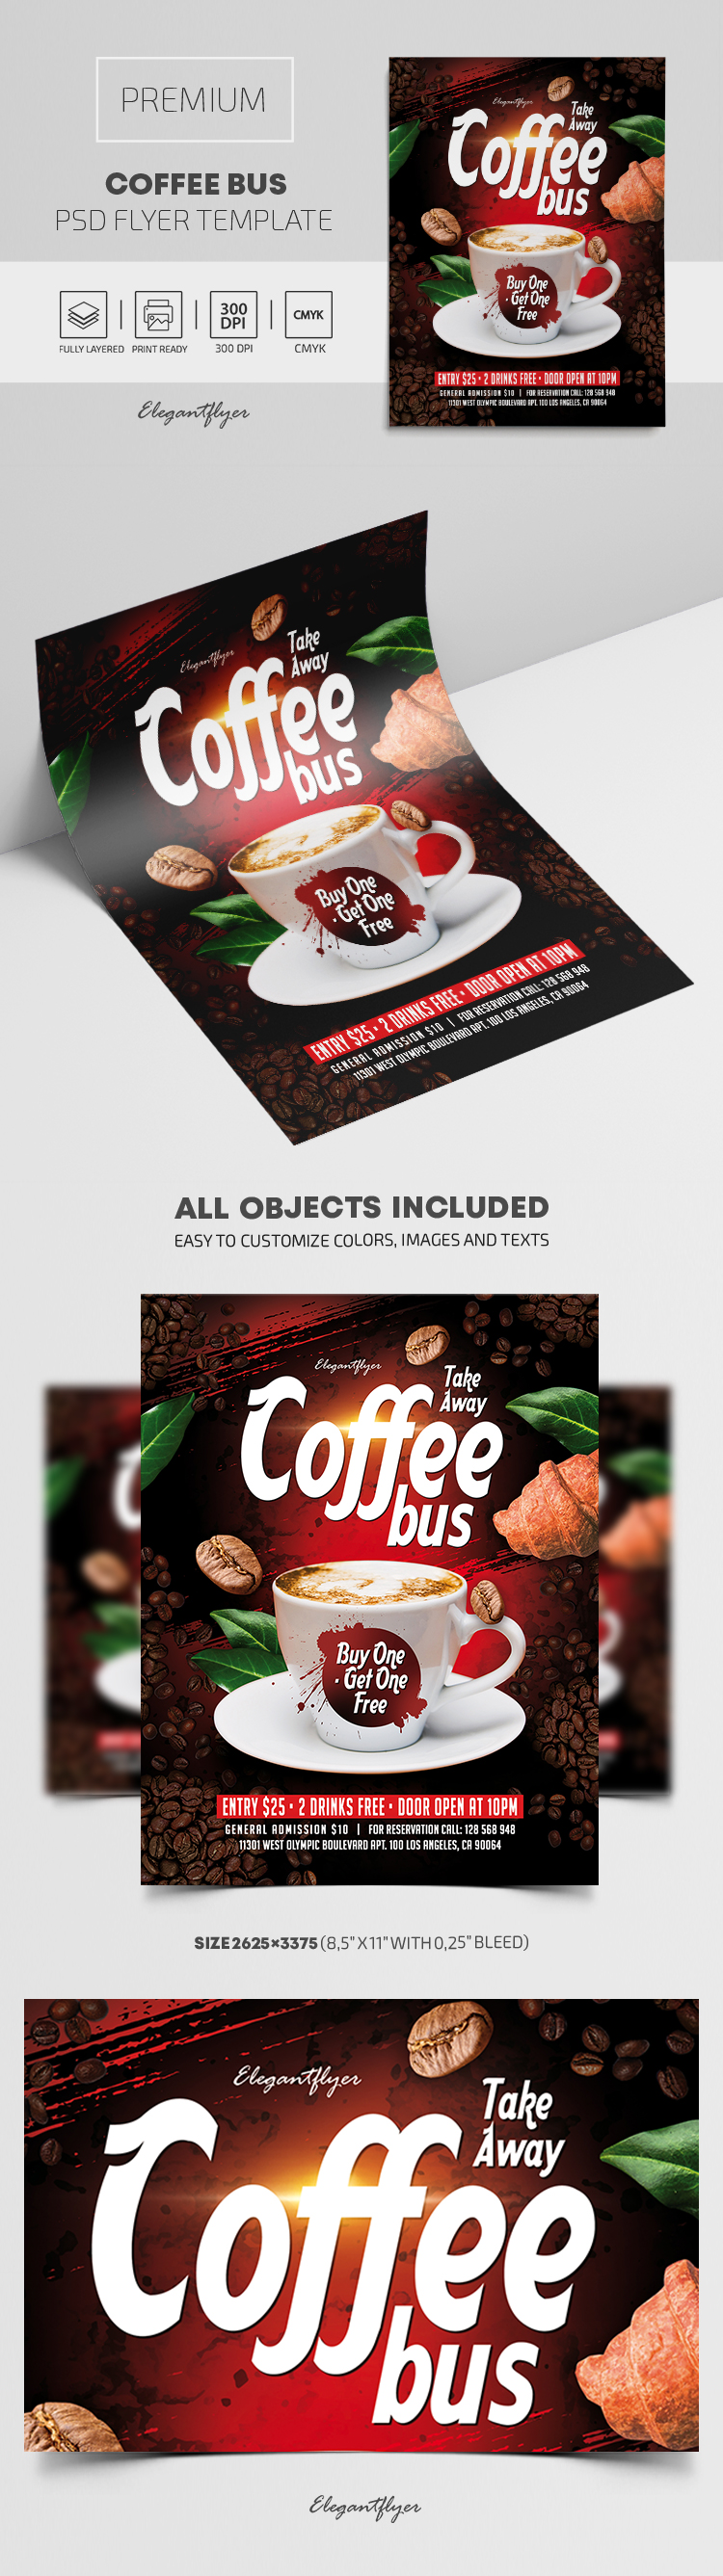 Take Away. Coffee Bus. Buy One – Get One Free – Premium PSD Flyer Template